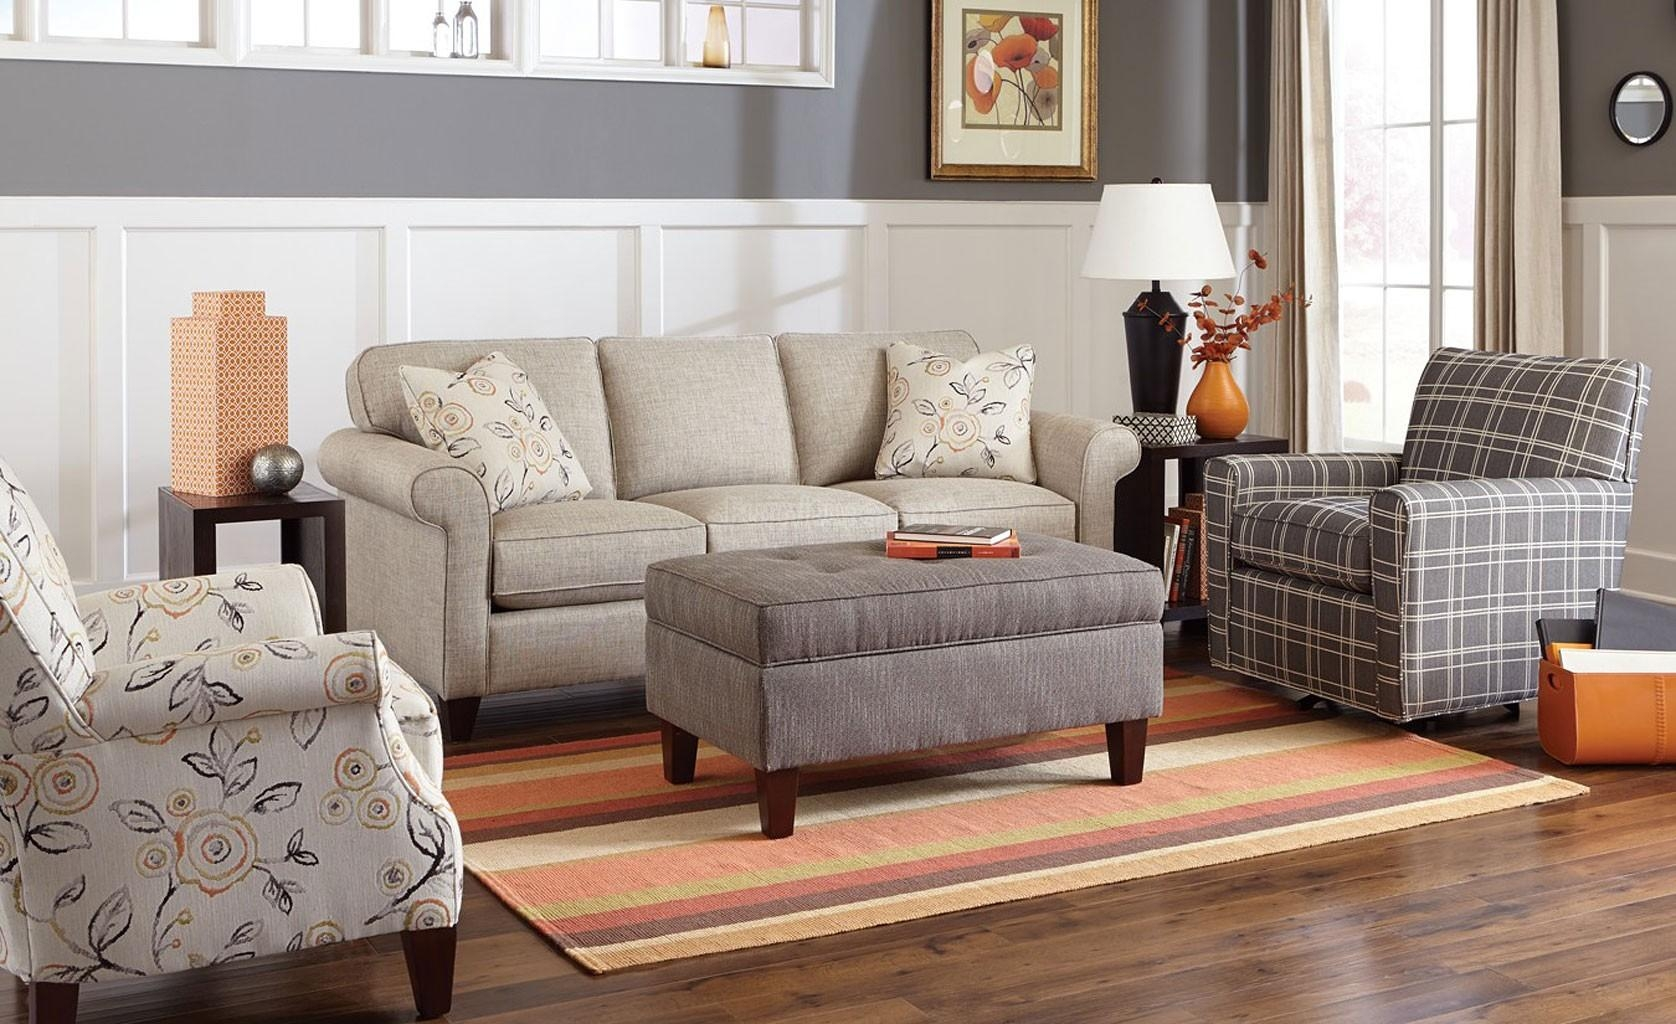 Furnitures: Craftsman Style Upholstery Fabric | Craftmaster Pertaining To Craftmaster Sectional (View 13 of 15)